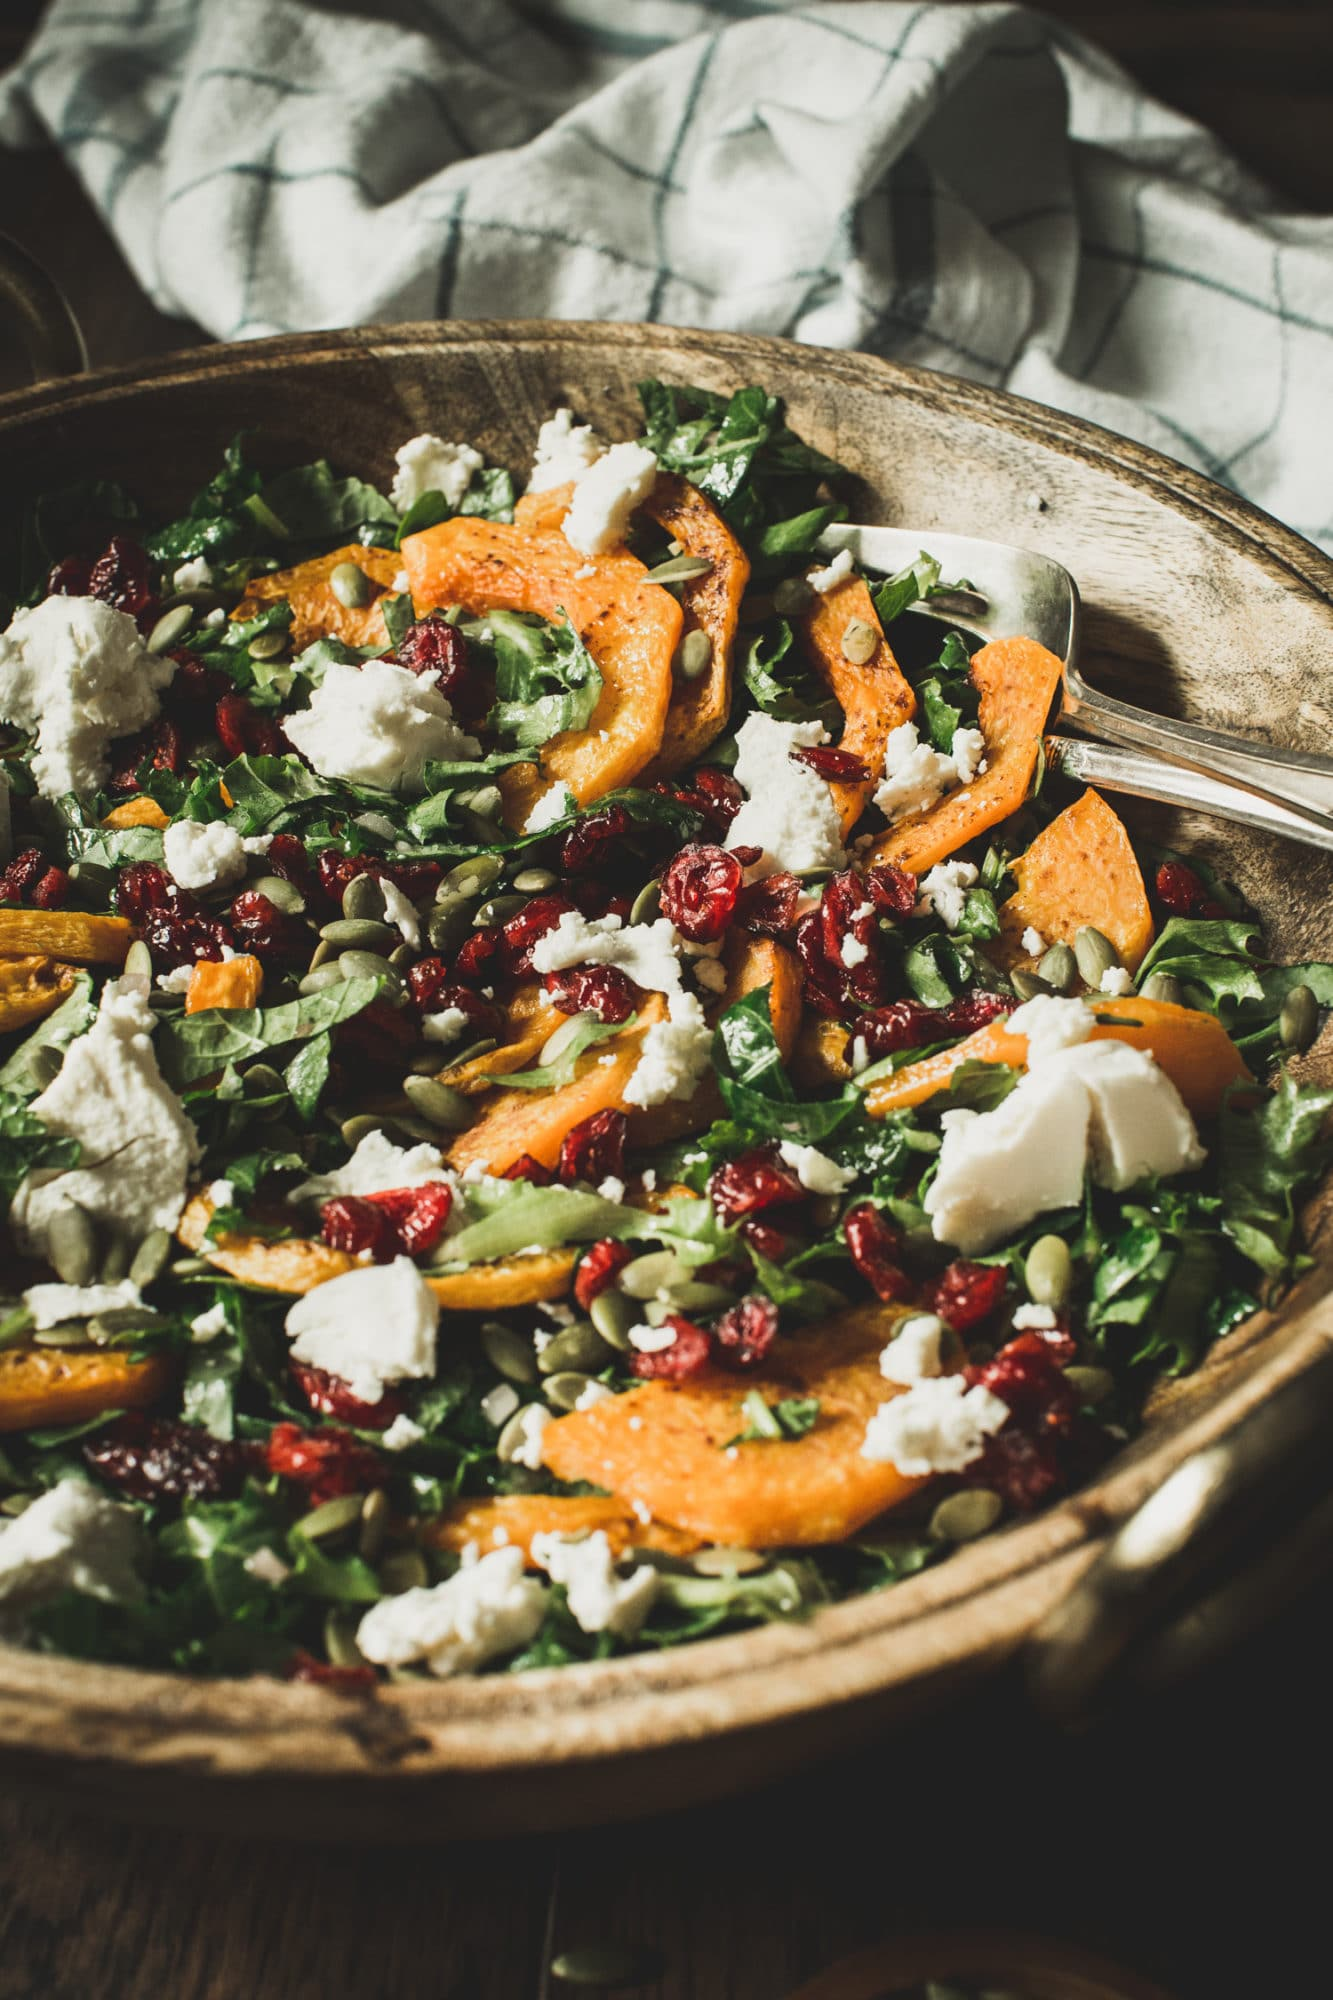 butternut squash salad side view in a wooden bowl